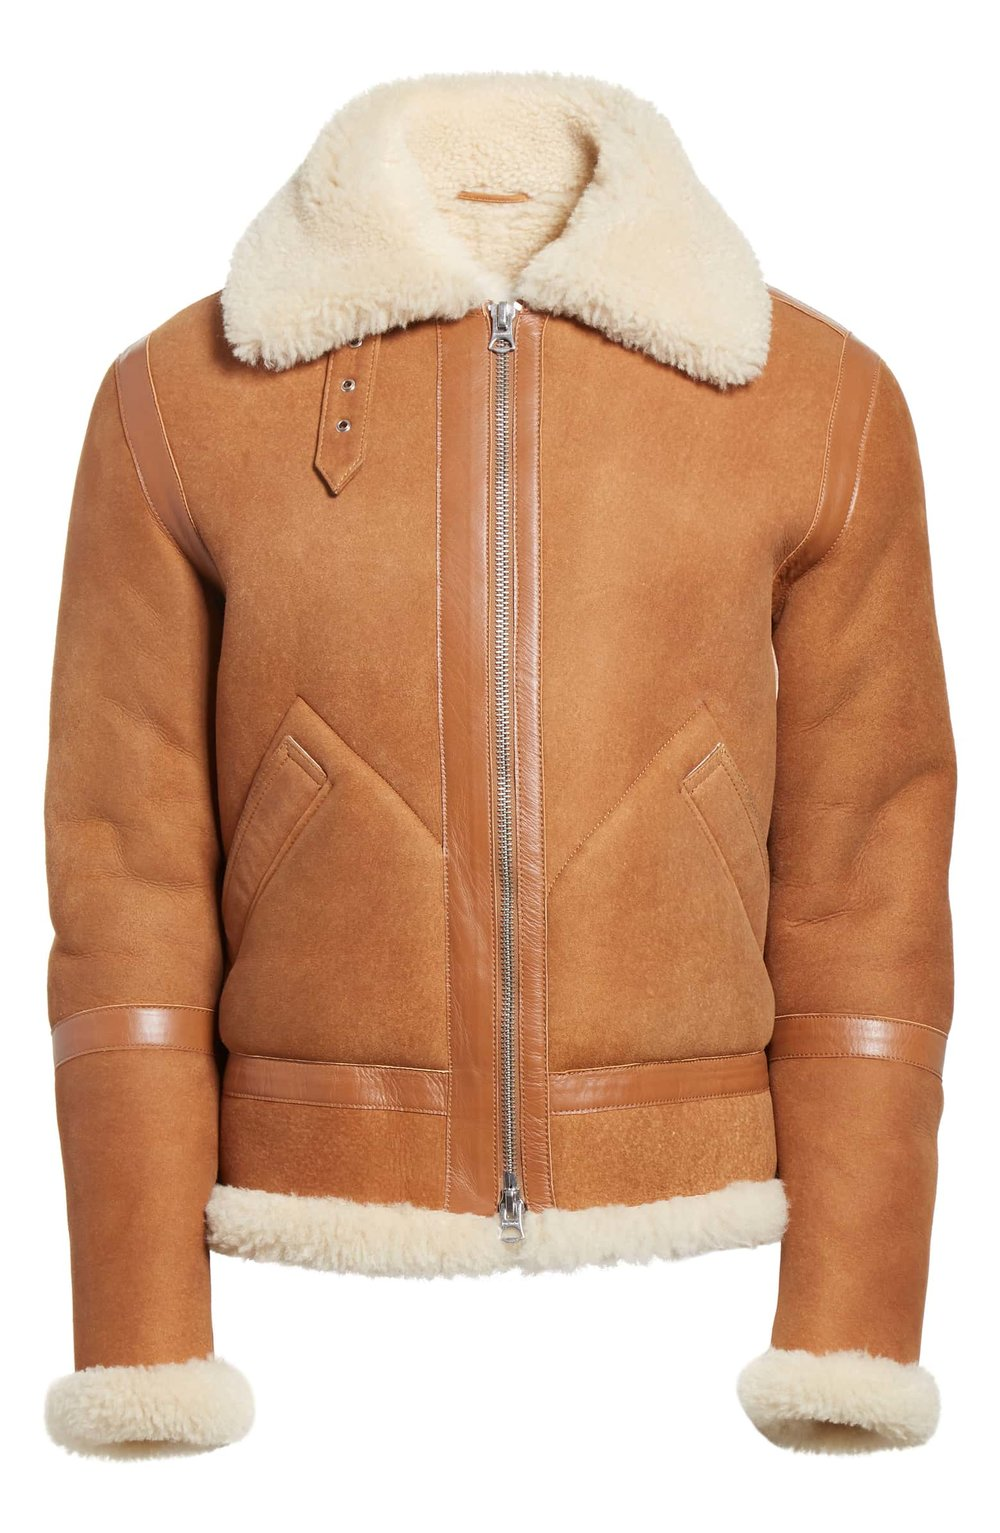 Acne Studios Tan Leather Shearling Bomber.jpeg